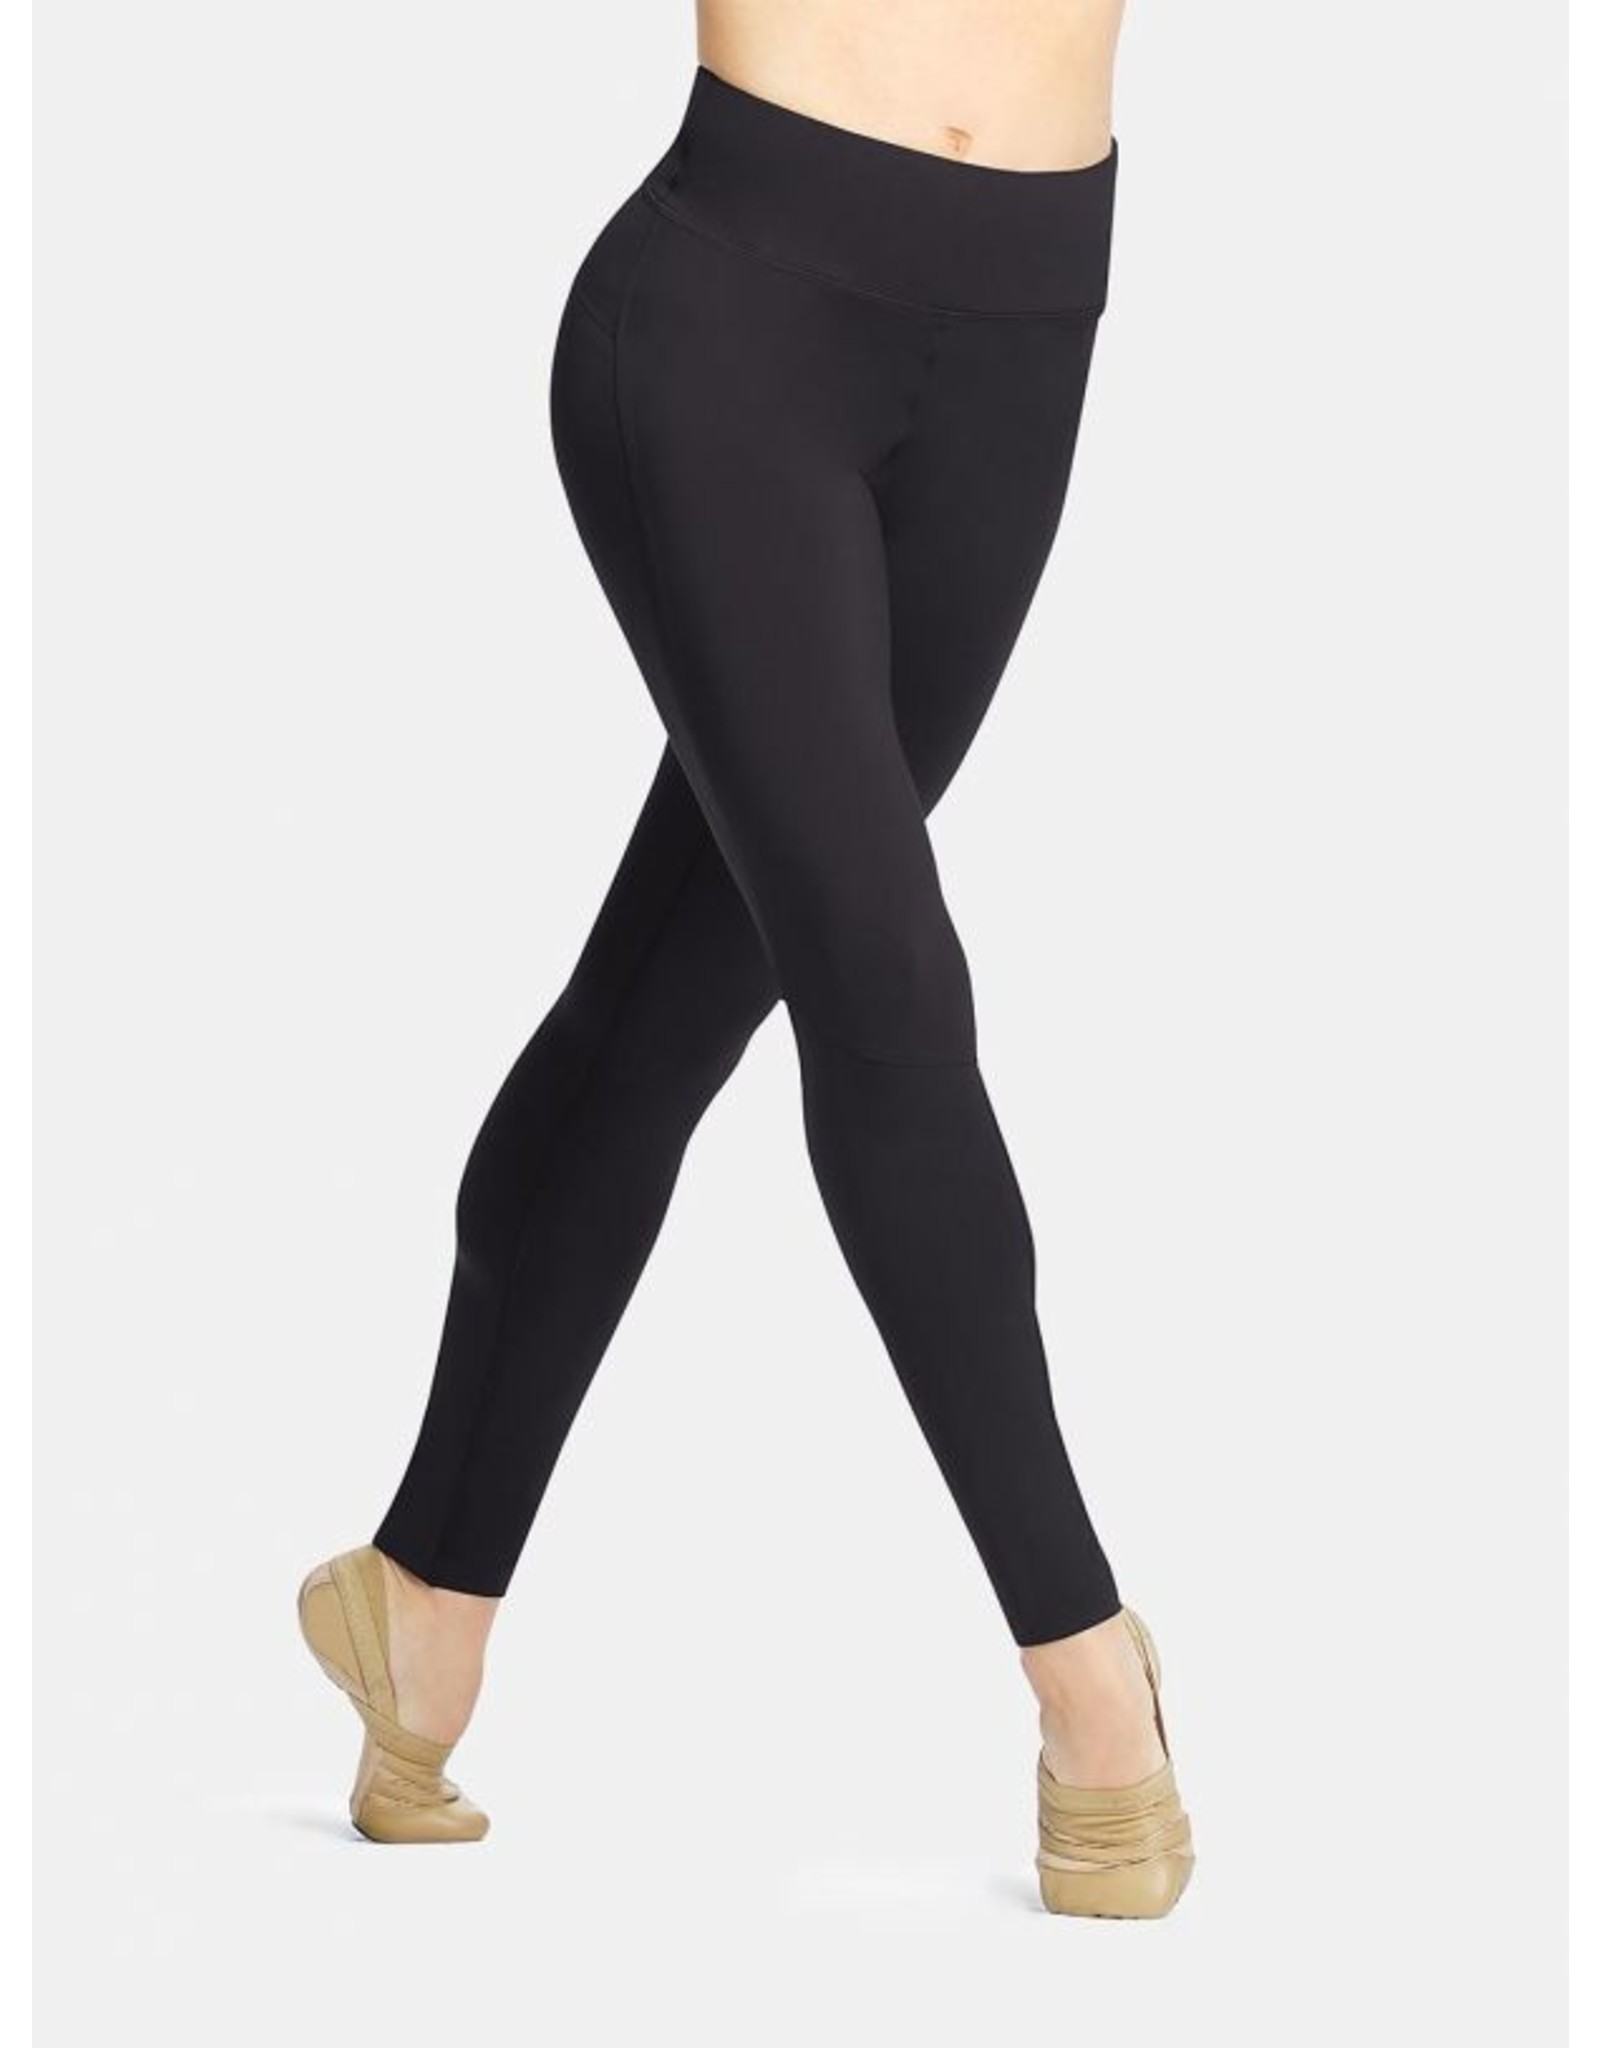 CAPEZIO TECH FULL LENGTH LEGGING